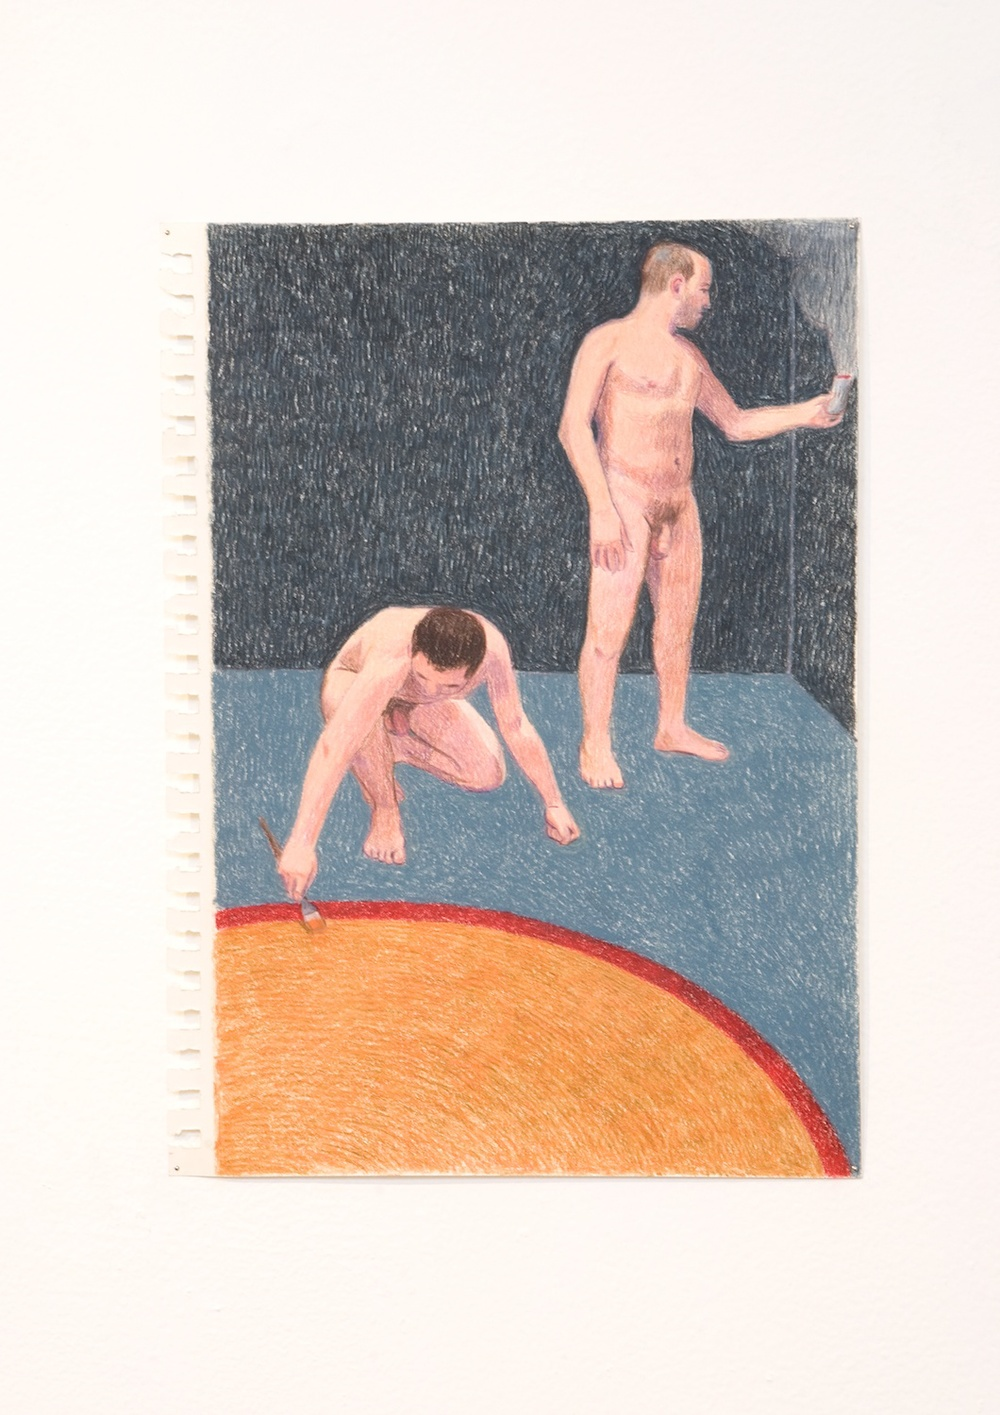 "Elijah Burgher Preparing a ritual space 2 2009 Colored pencil on paper 12"" x 8"" EB007"